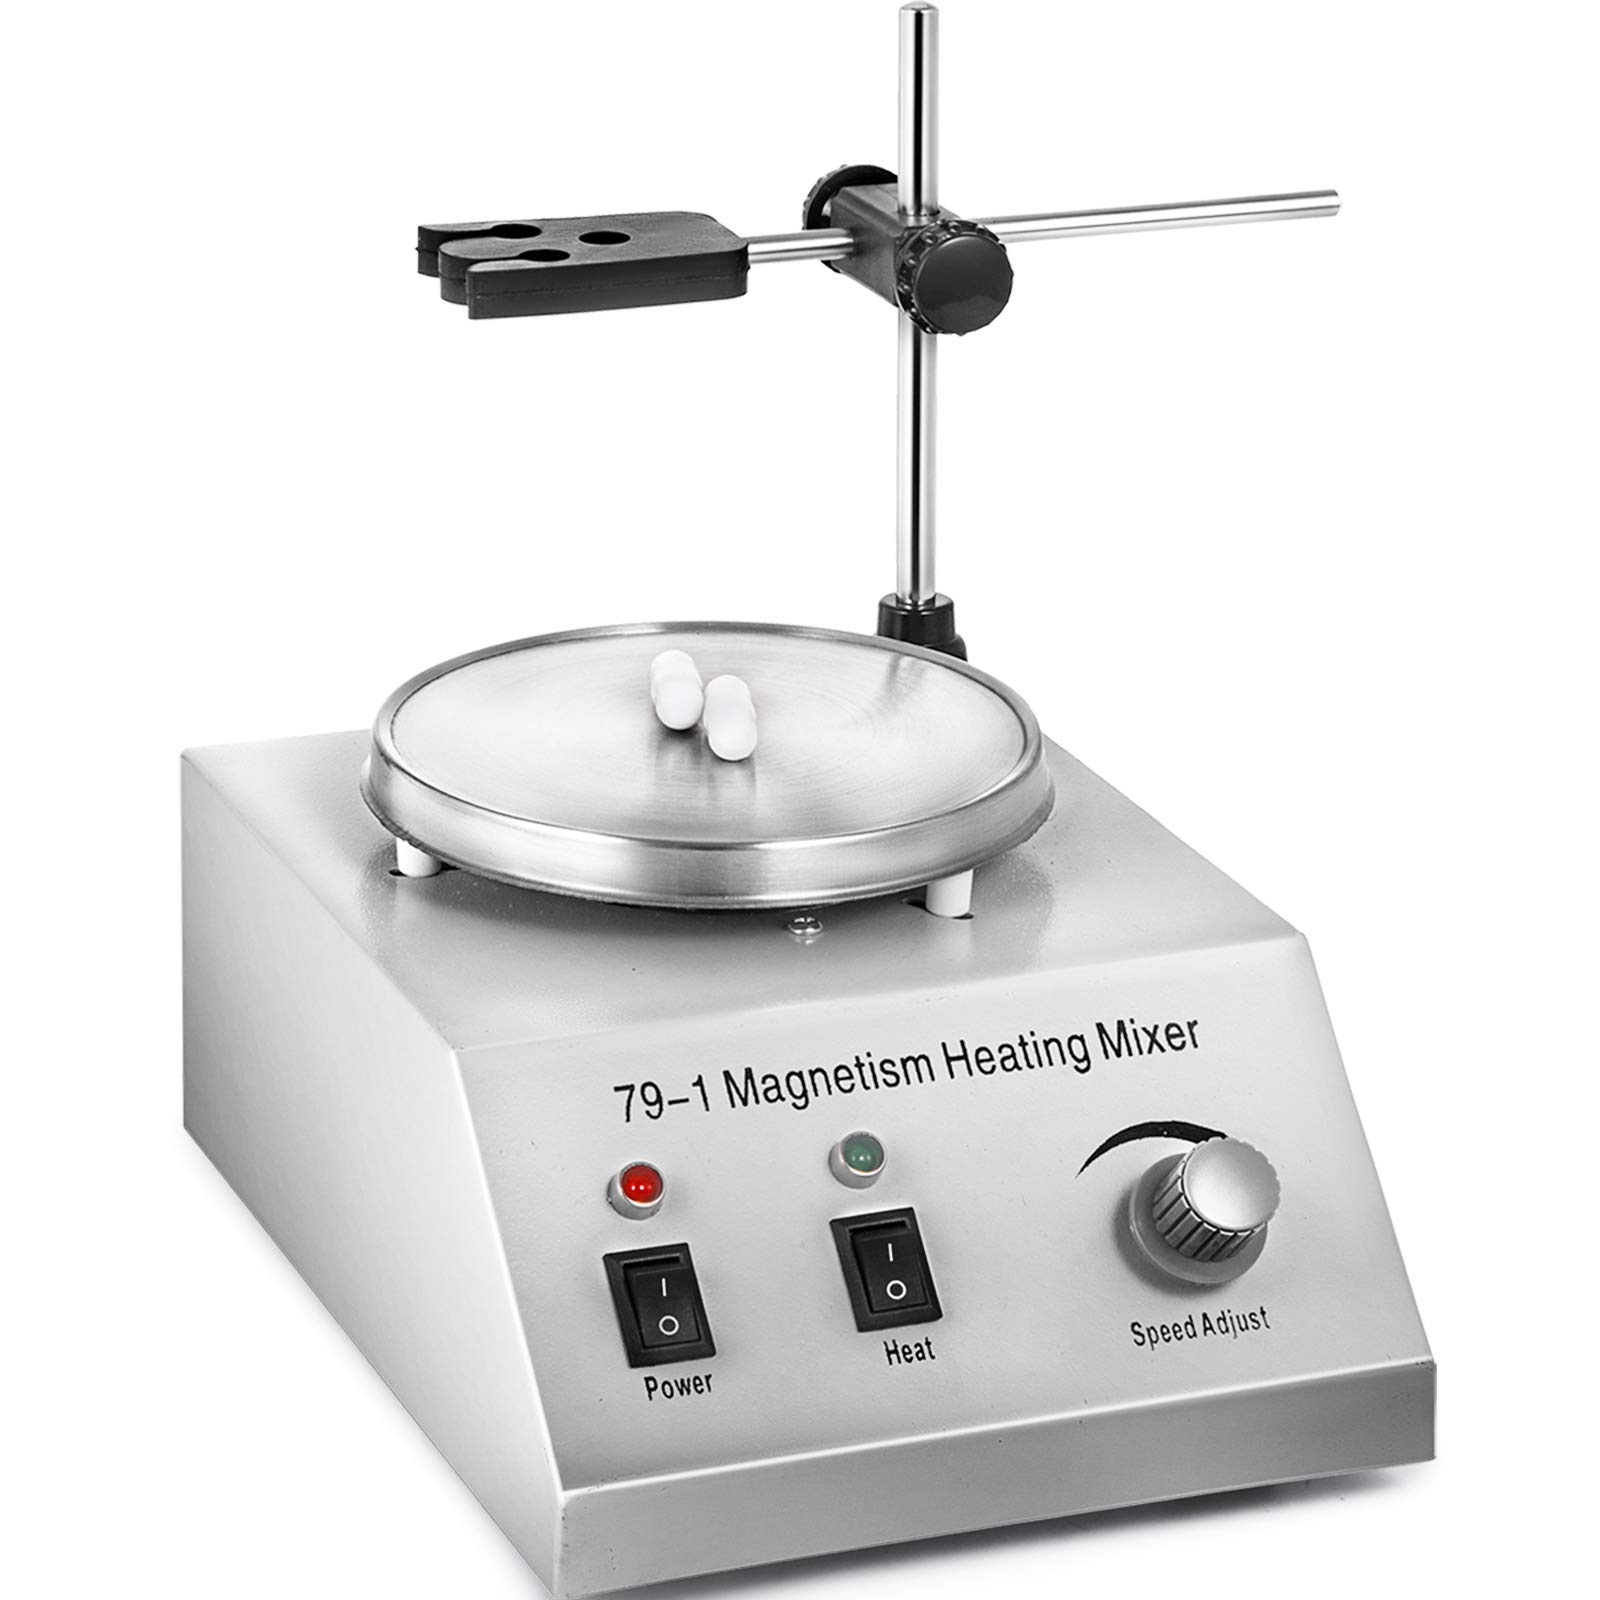 Happybuy 79-1Magnetic Stirrer 150W 1000ML Lab Magnetic Mixer and Hotplate 0-1600 RPM Adjustable Magnetic Stirrer Mixer with Stirring Bar